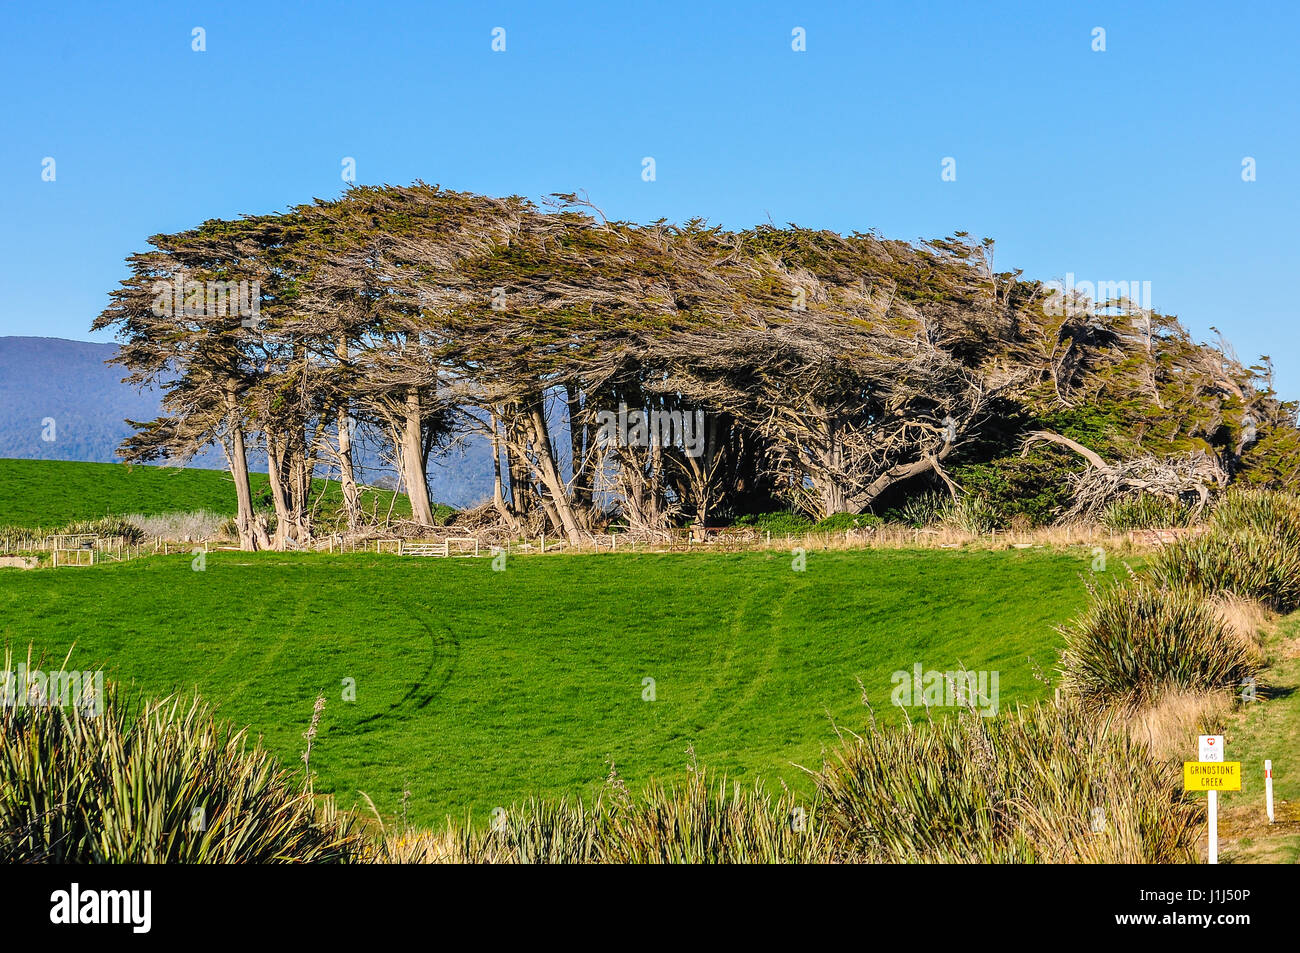 Twisted trees in the Southern Scenic Route, New Zealand - Stock Image